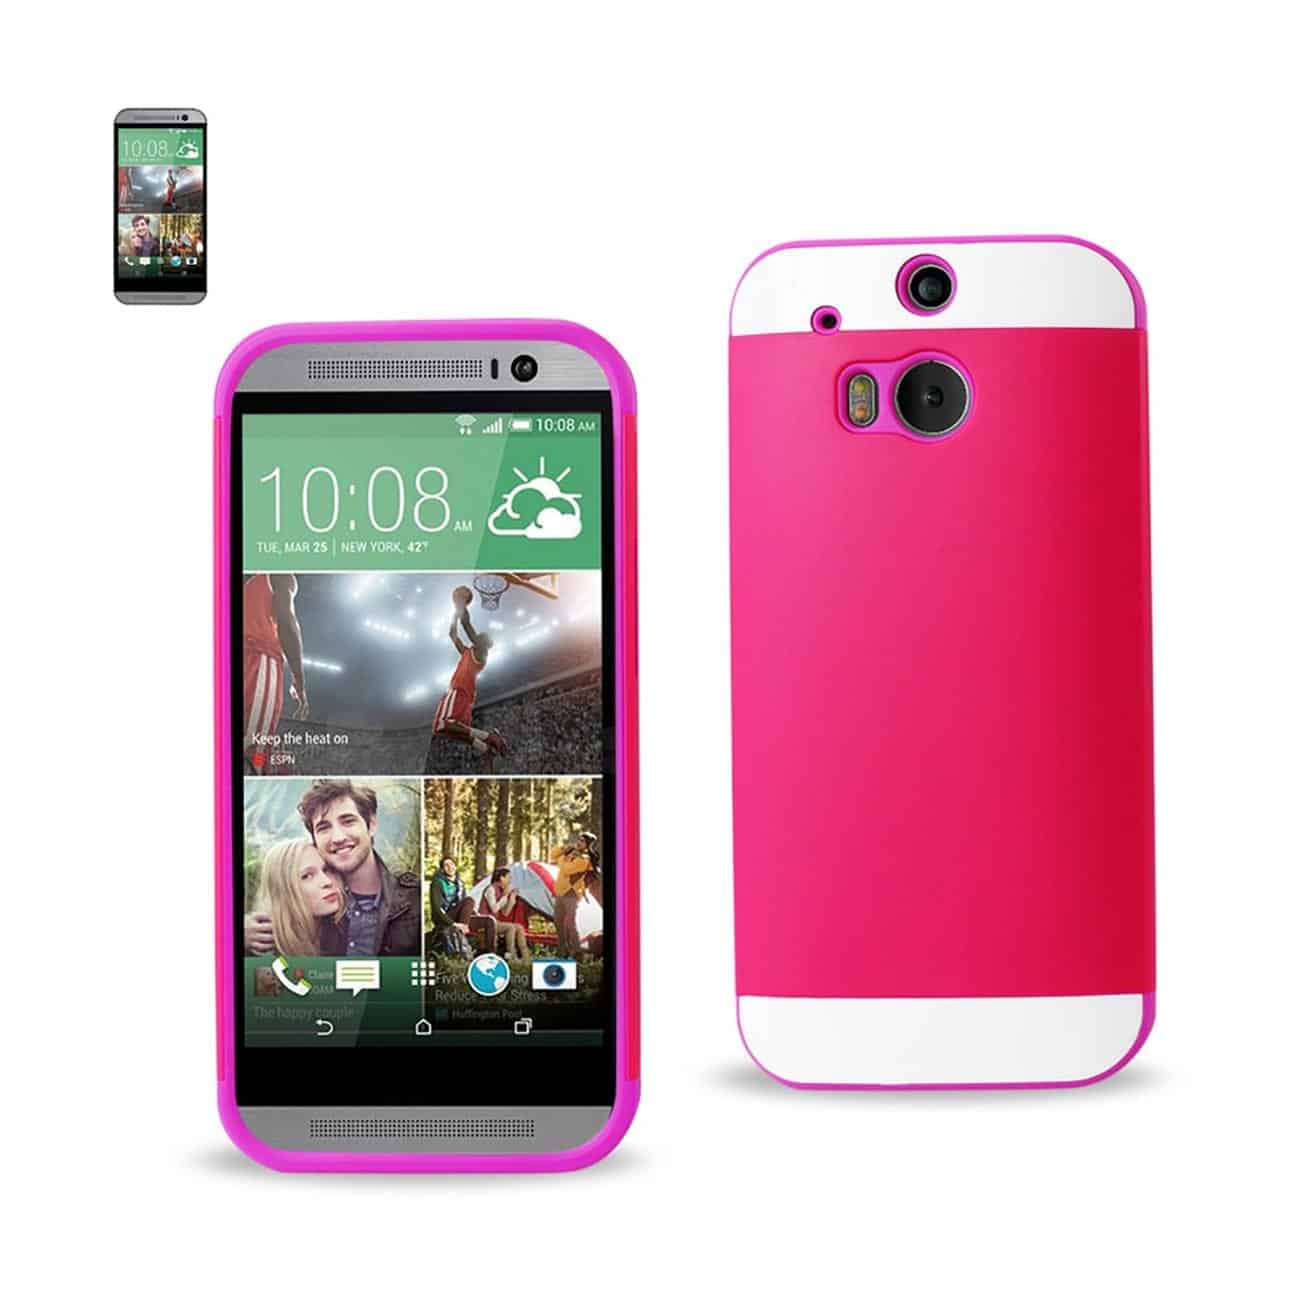 HTC ONE M8 HYBRID CASE WITH CARD HOLDER IN PURPLE HOT PINK